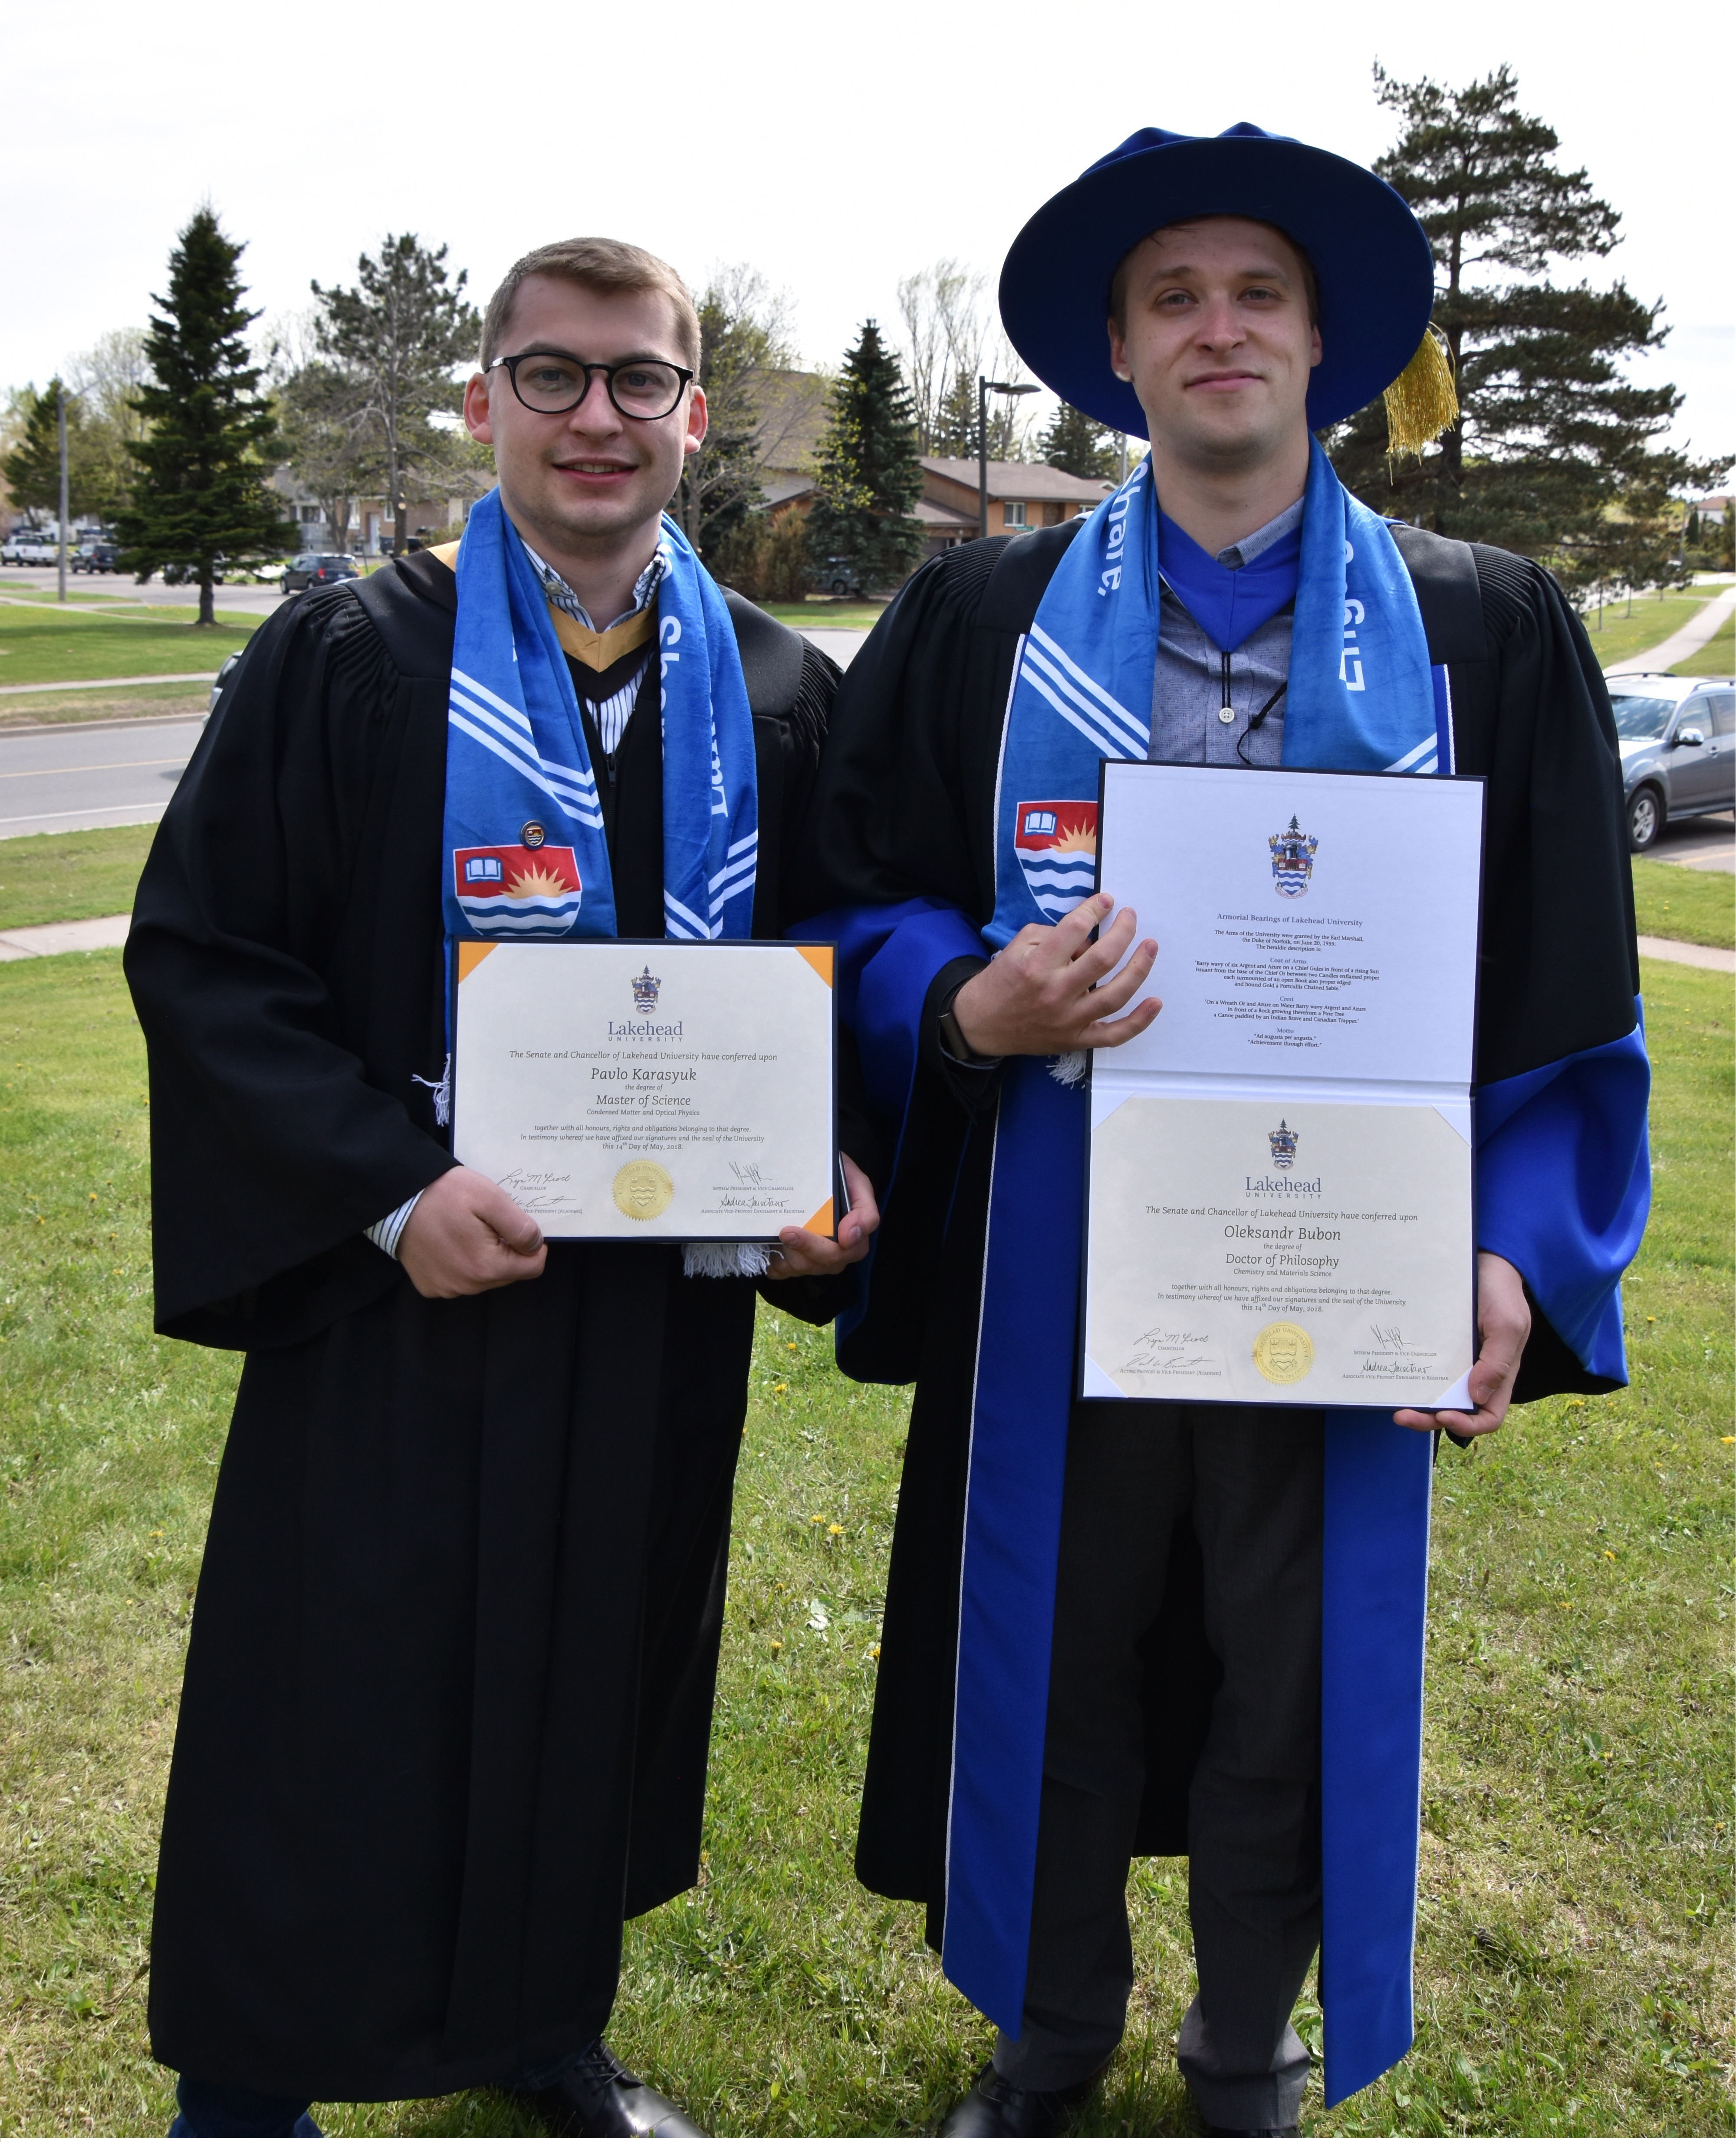 Pavlo Karasyuk (left) and Dr. Bubon (right)